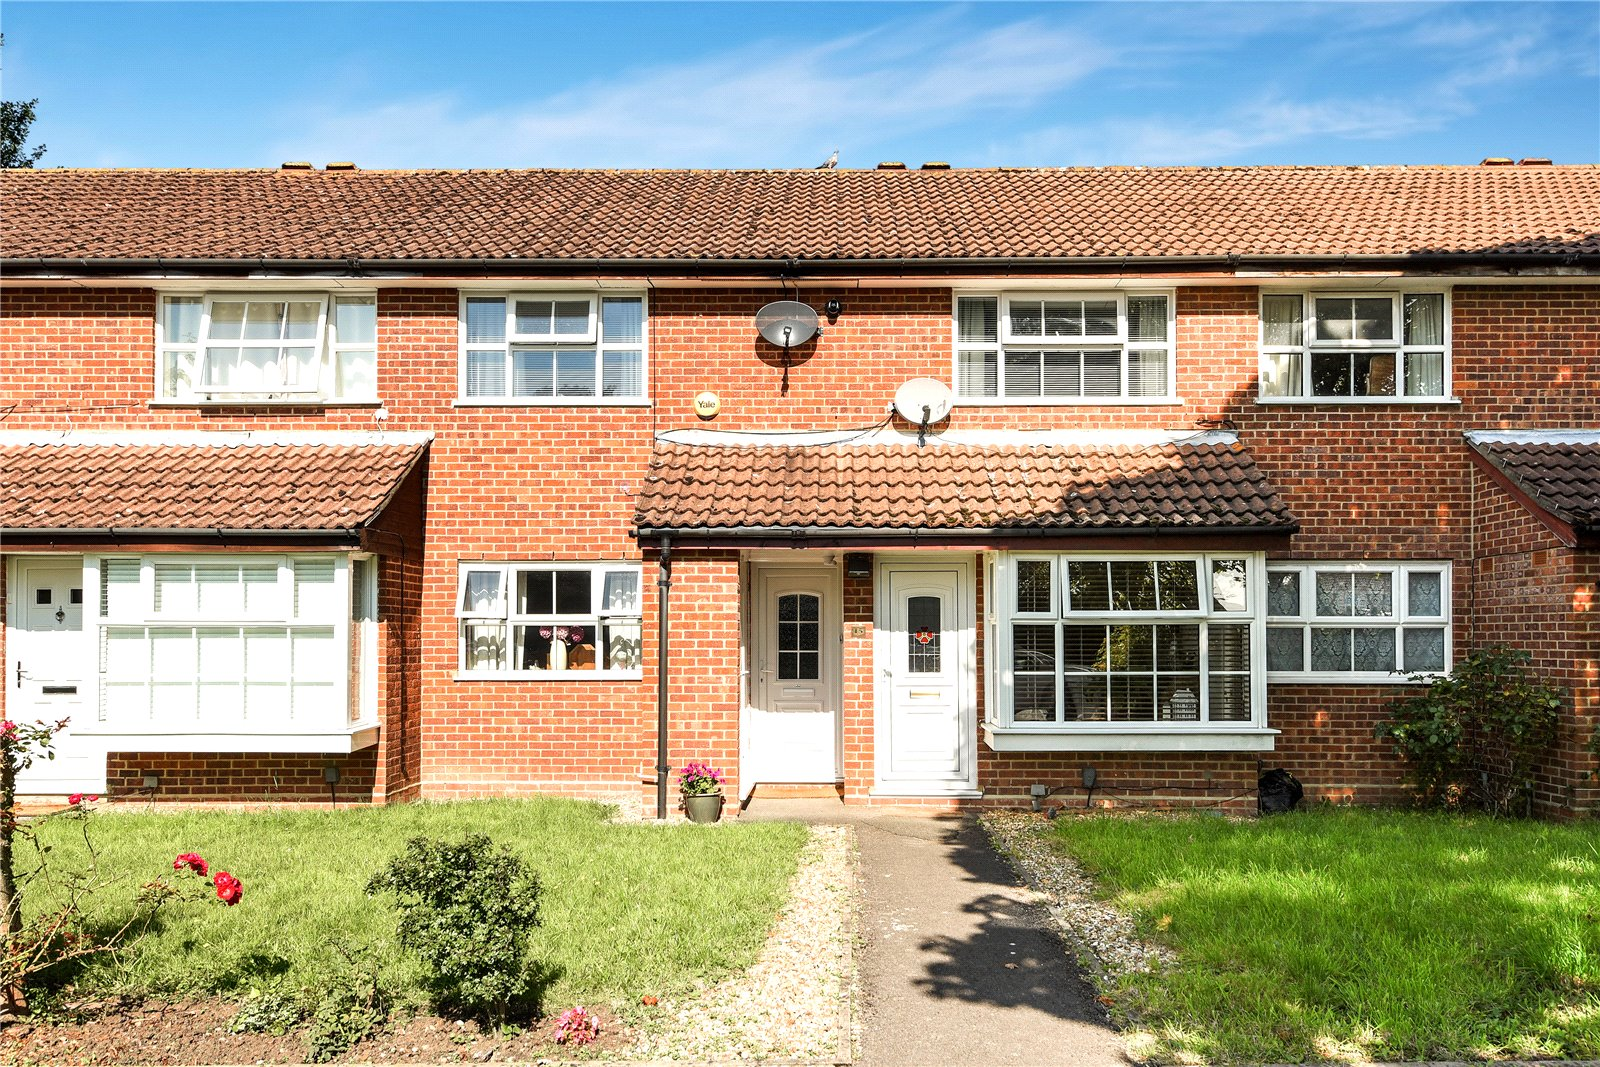 2 Bedrooms Maisonette Flat for sale in Chittering Close, Lower Earley, Reading, Berkshire, RG6